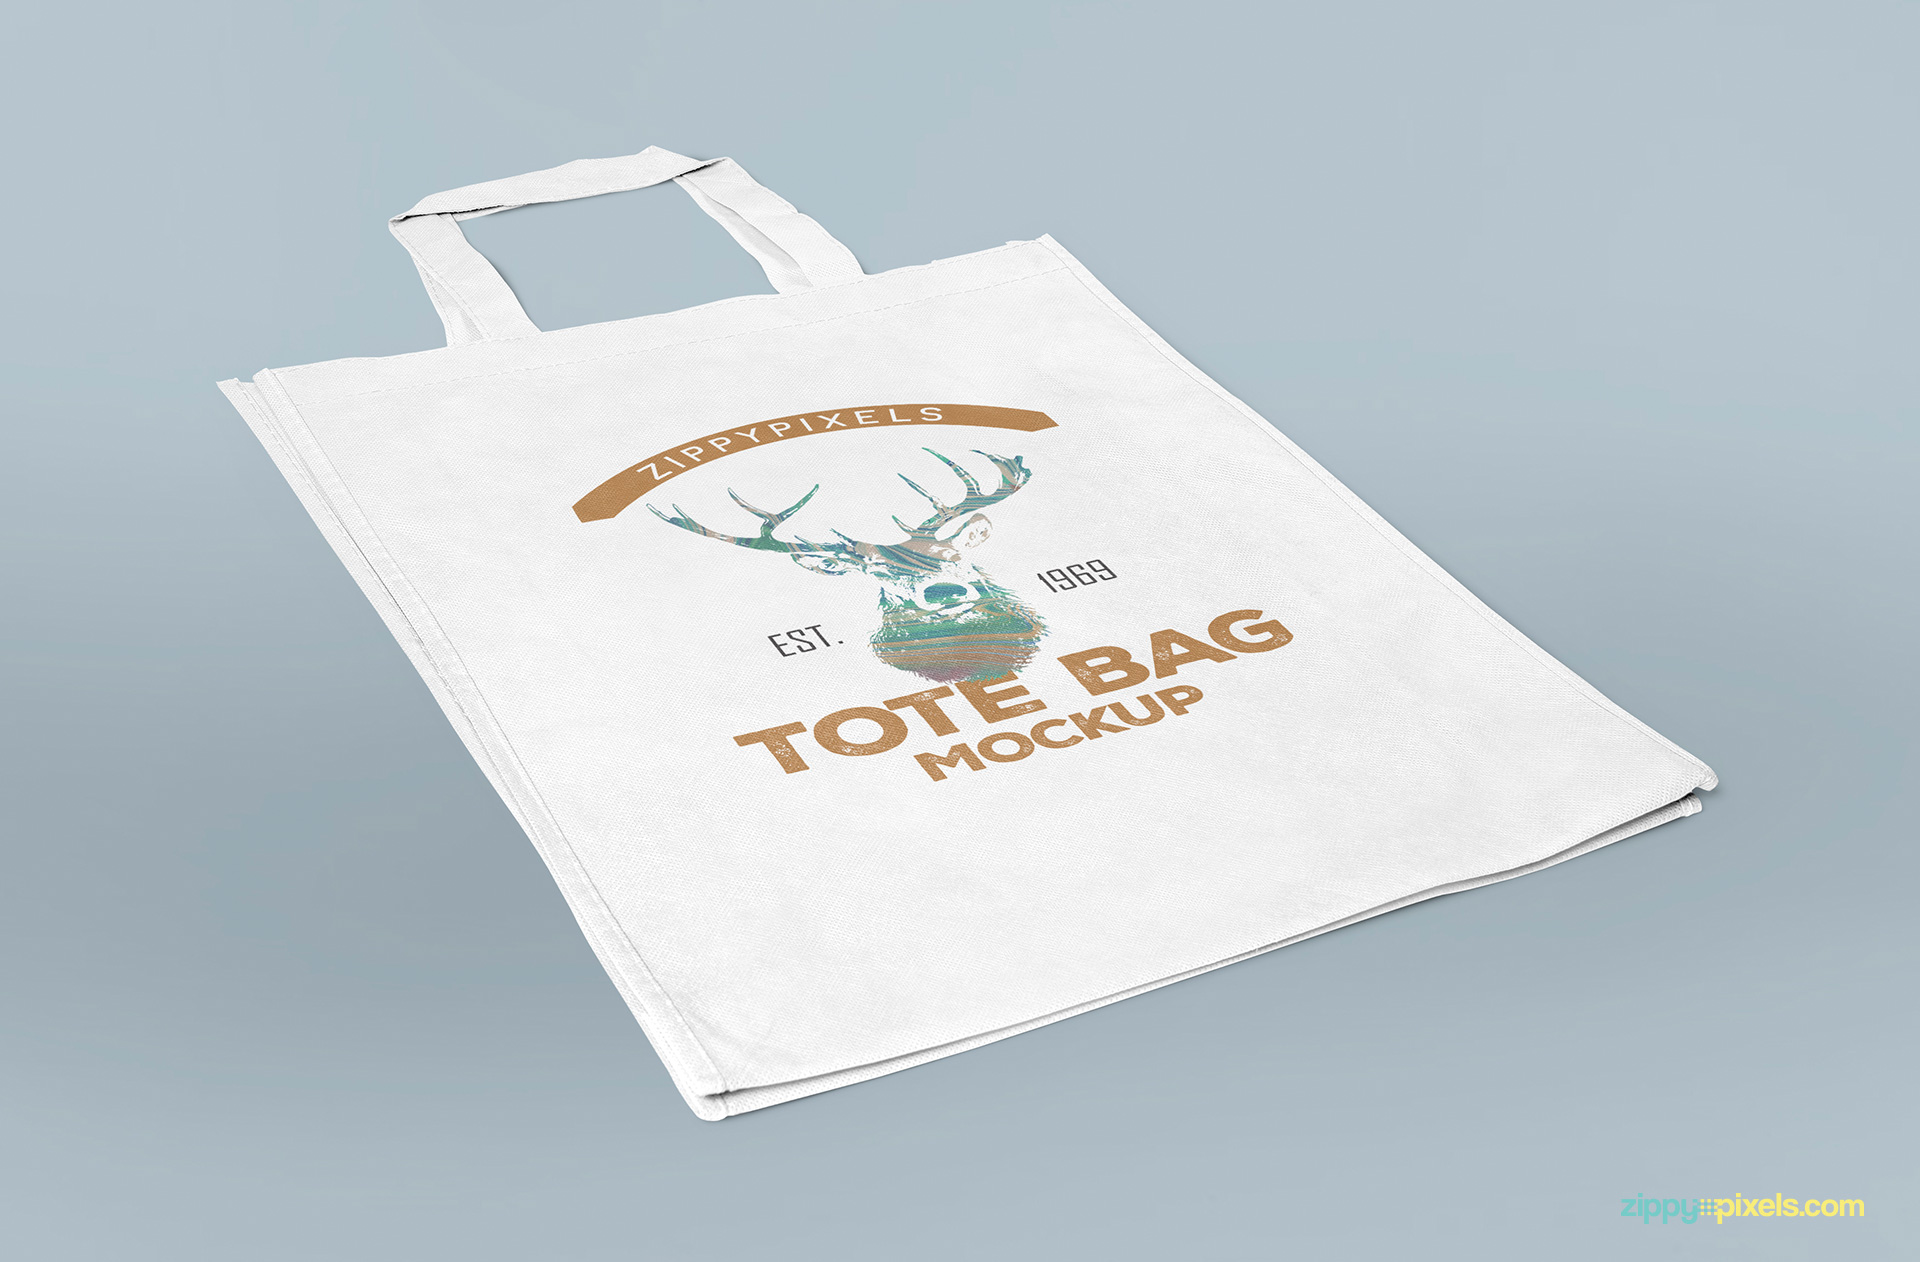 tote-bag-mocku-on-plain-surface